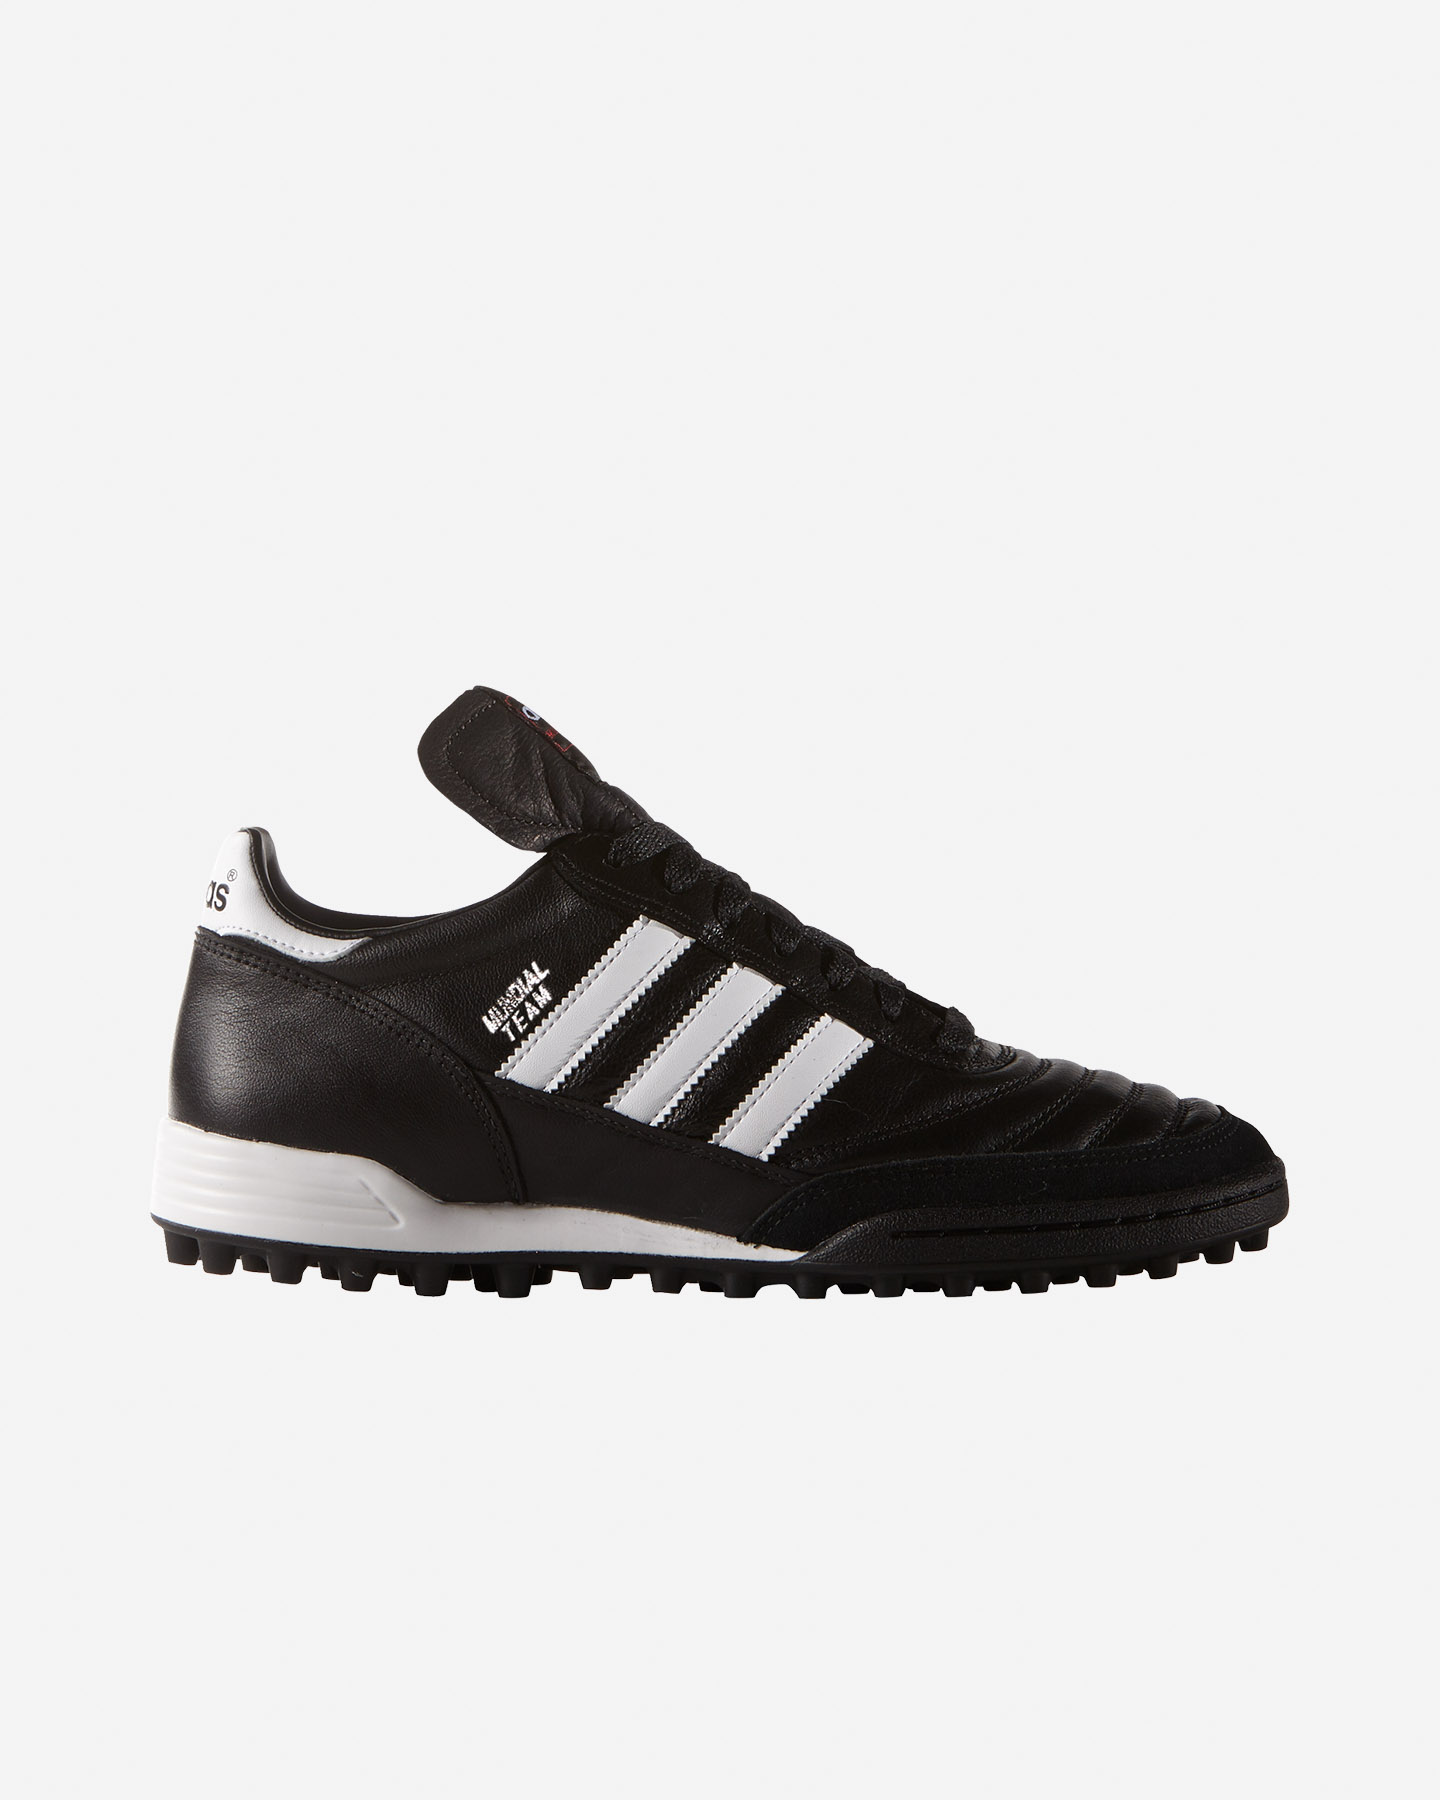 separation shoes 35966 93d8a Scarpe calcio ADIDAS MUNDIAL TEAM TF M ...